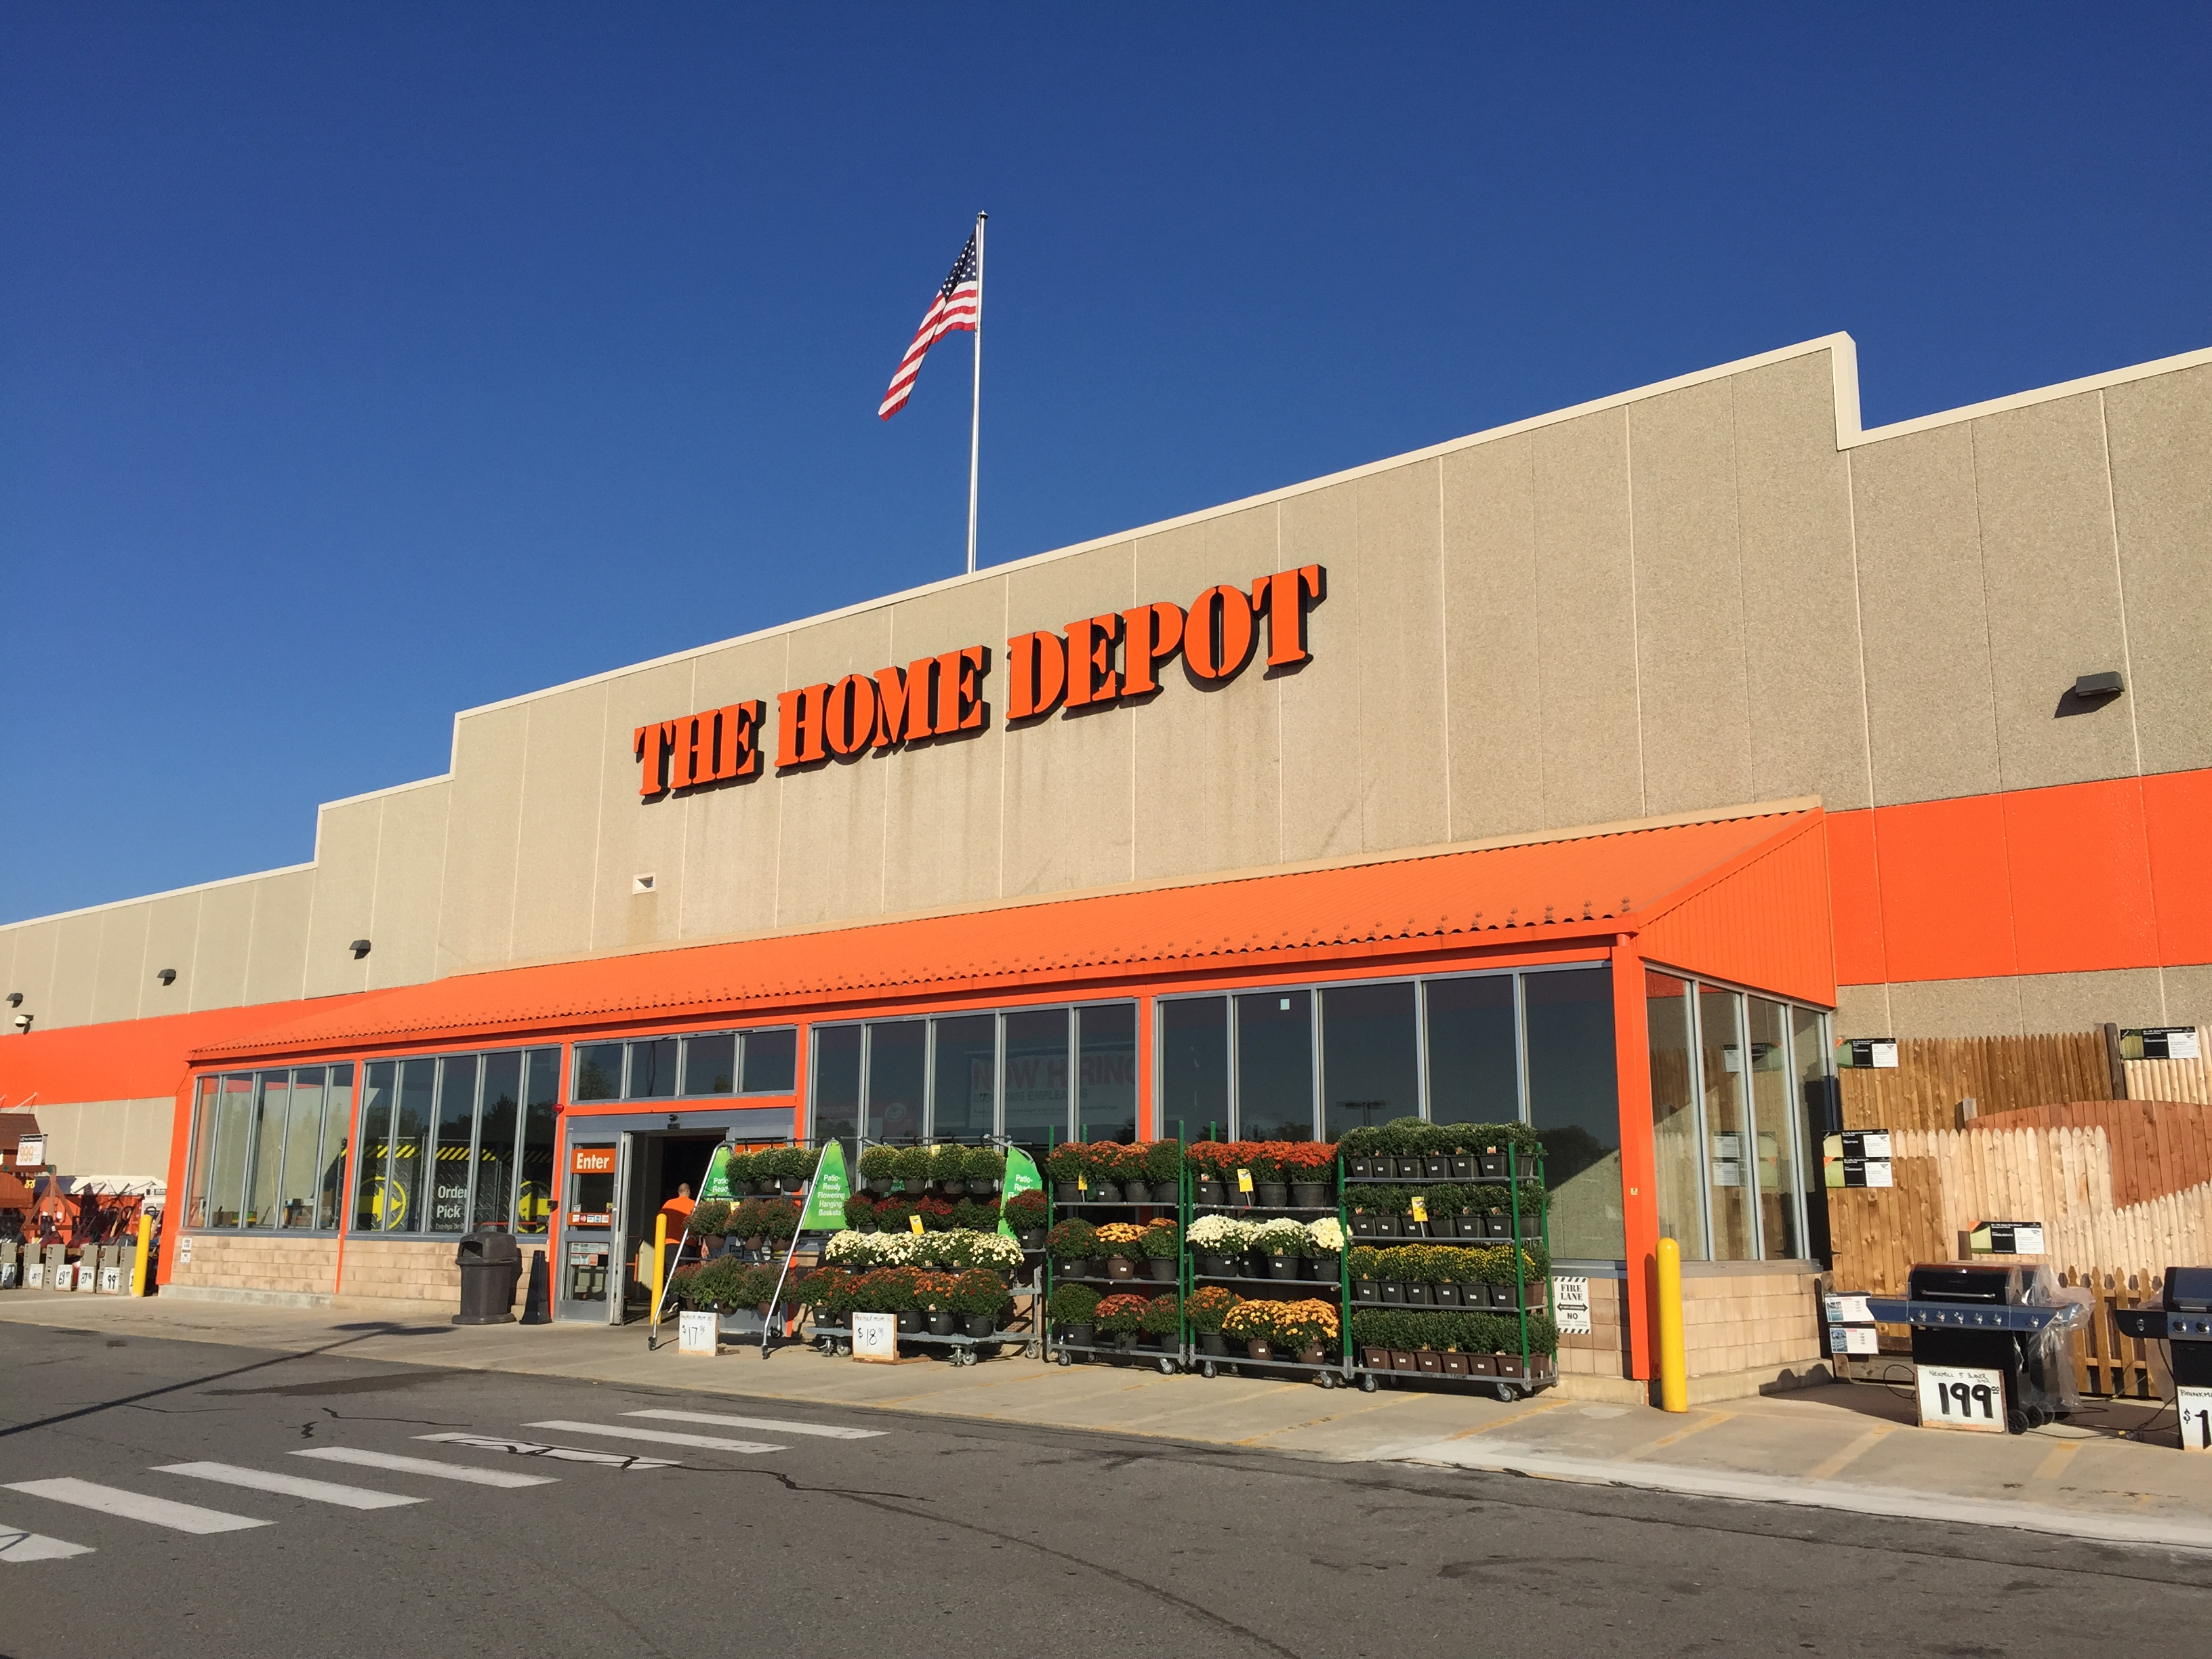 The home depot in plaistow nh whitepages for Shop home depot